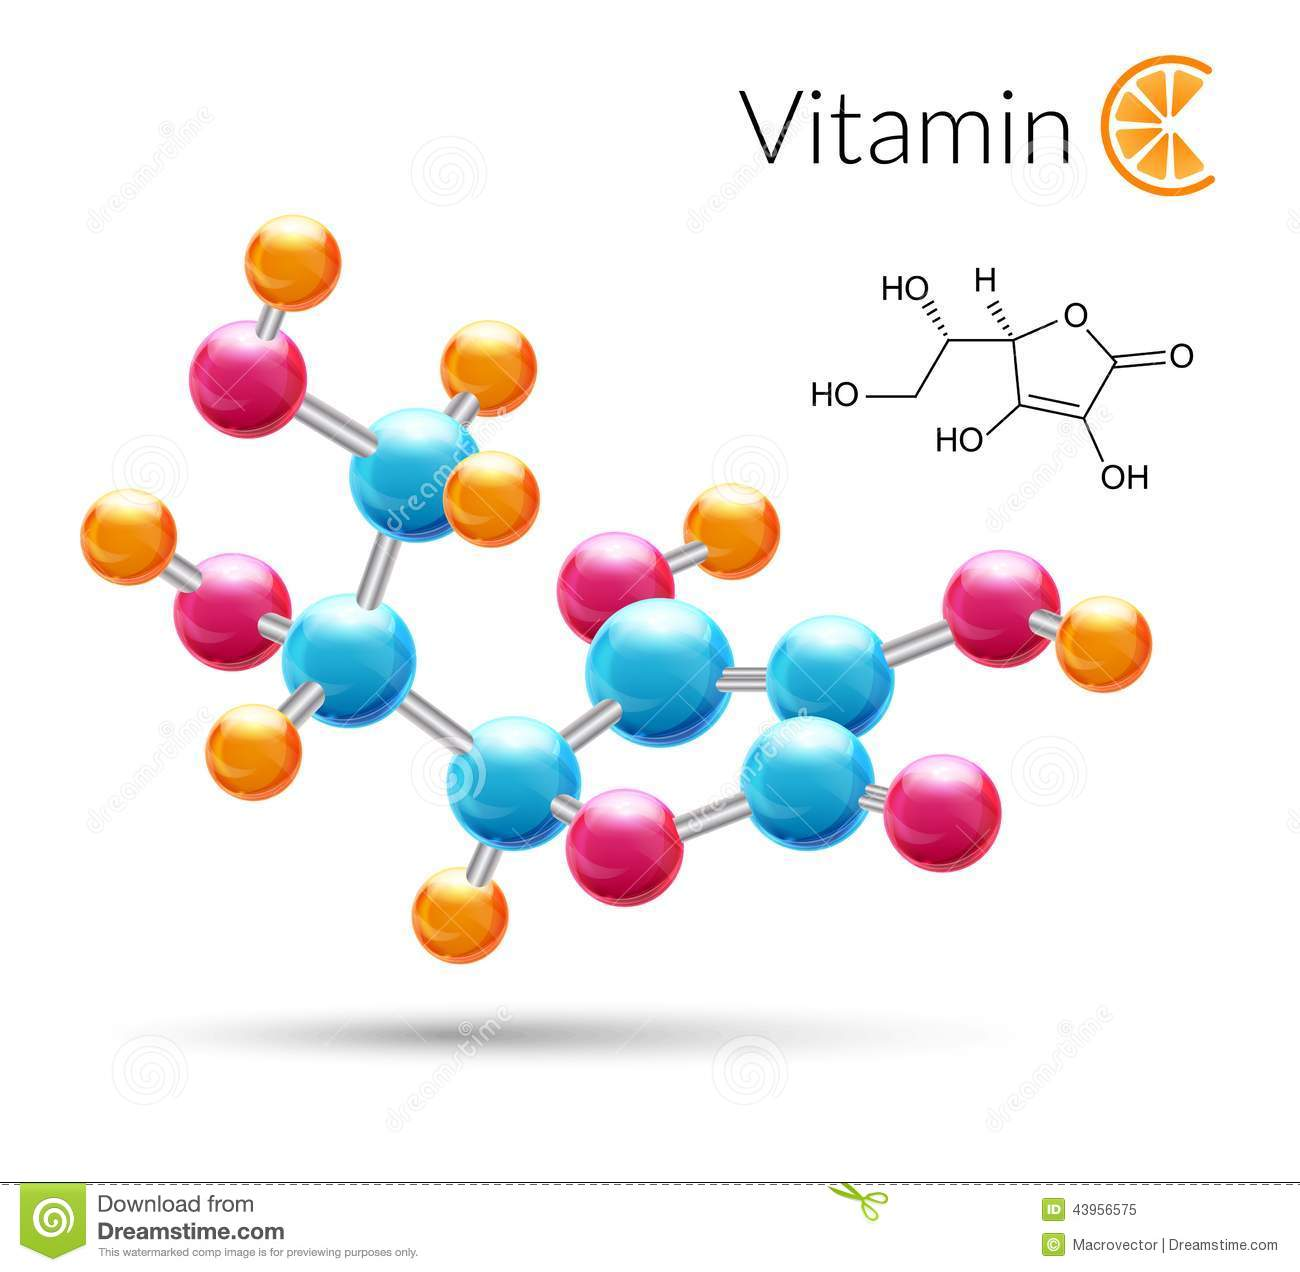 chemistry vitamin c The intention is to concentrate on vitamin c for the practical part of the researching chemistry and, therefore, vitamin c will be the  chemistry teaching resources.